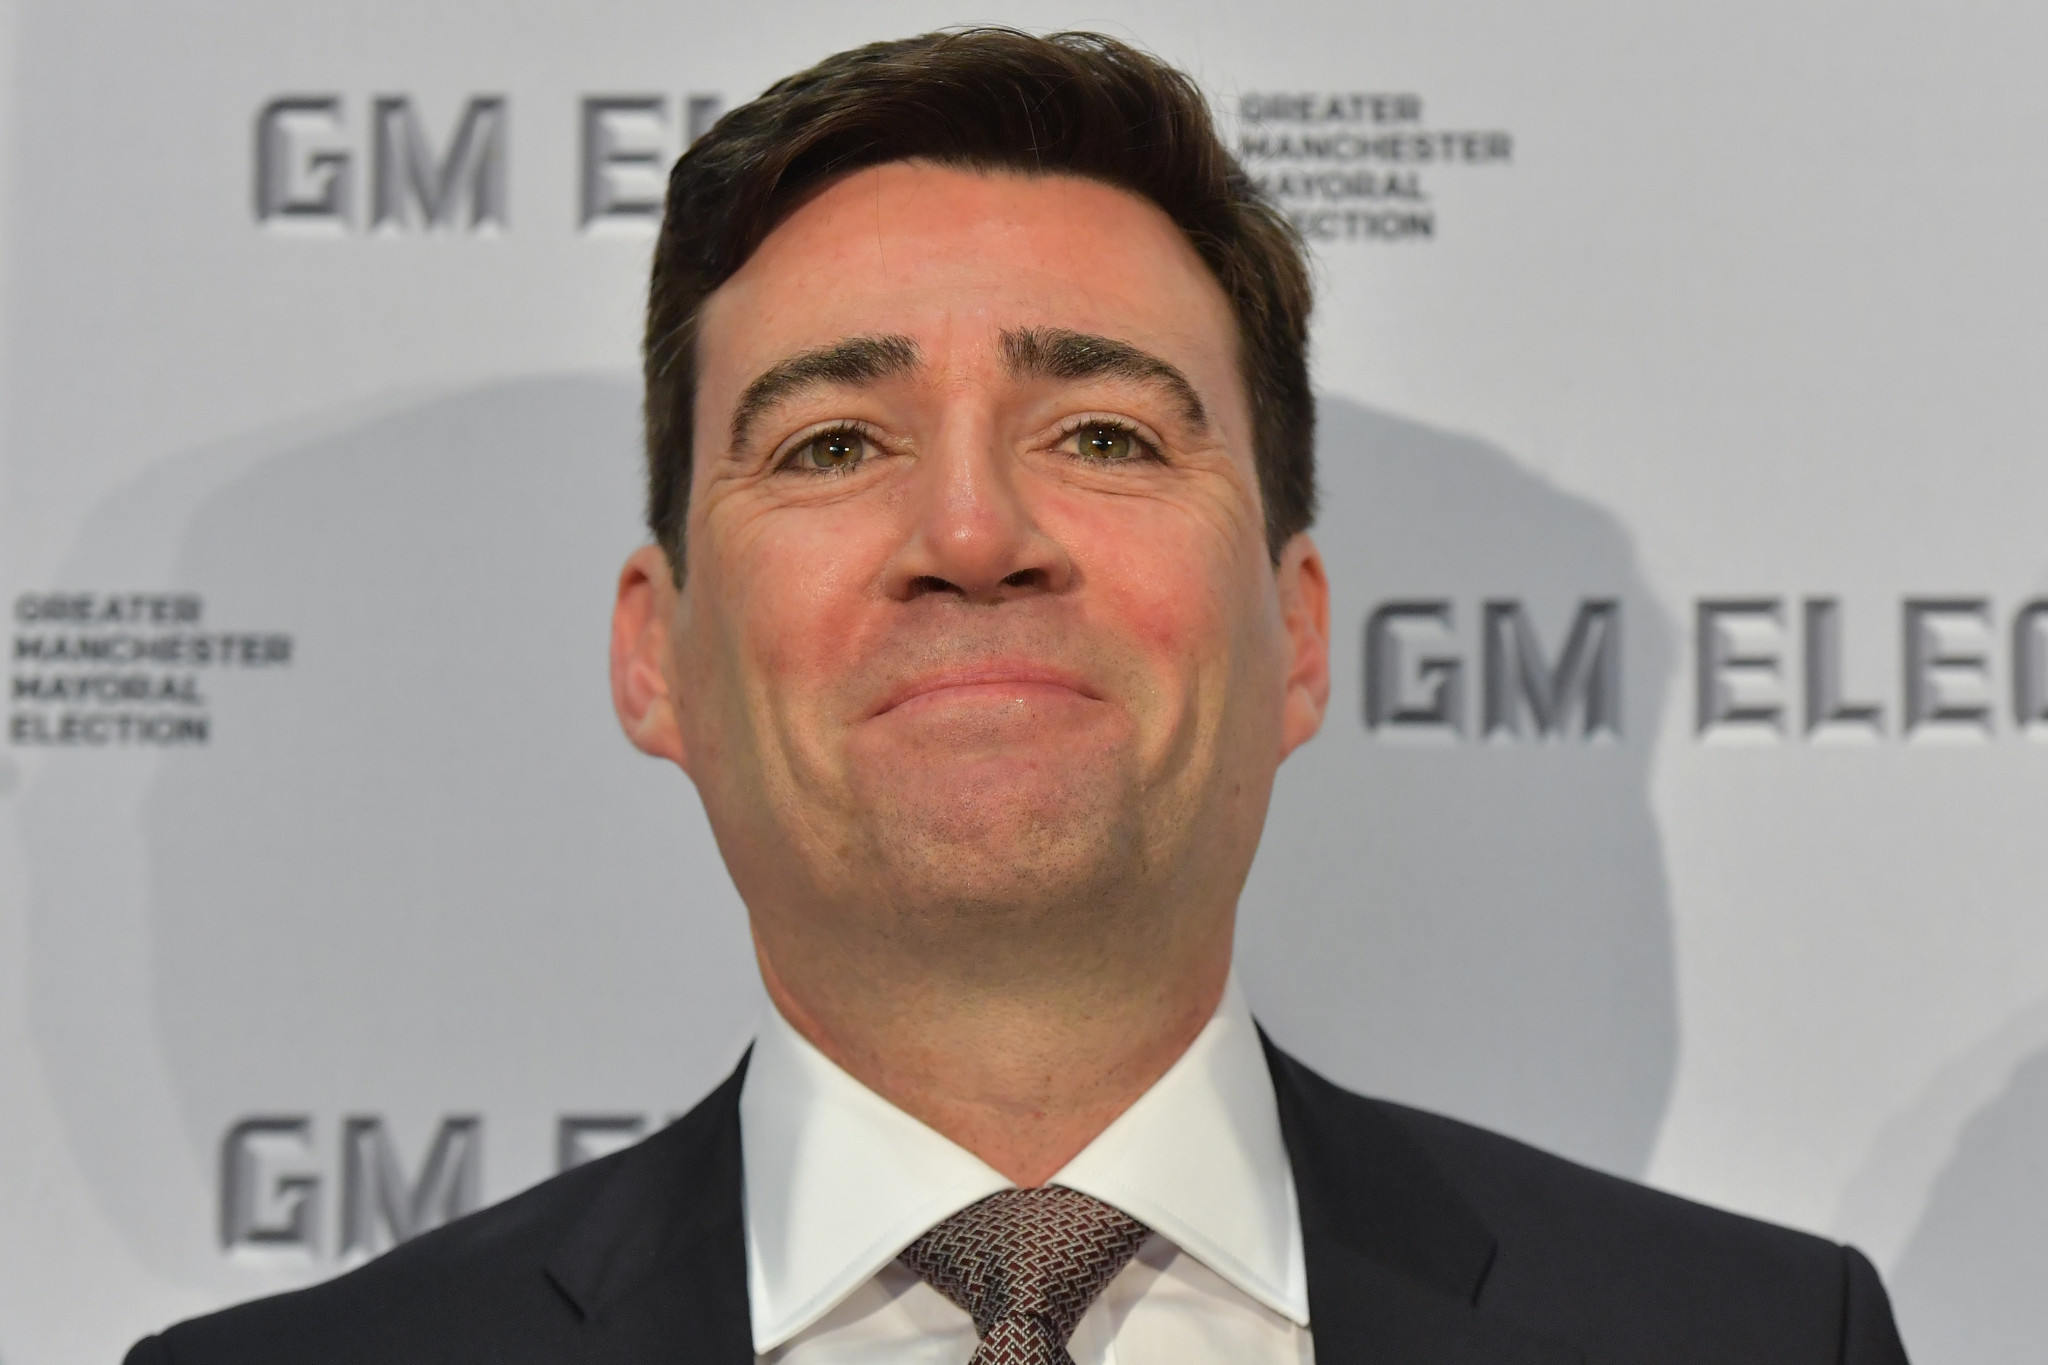 Andy Burnham, seen here after winning the Greater Manchester mayoral election, is the new President of the Rugby Football League ©Getty Images